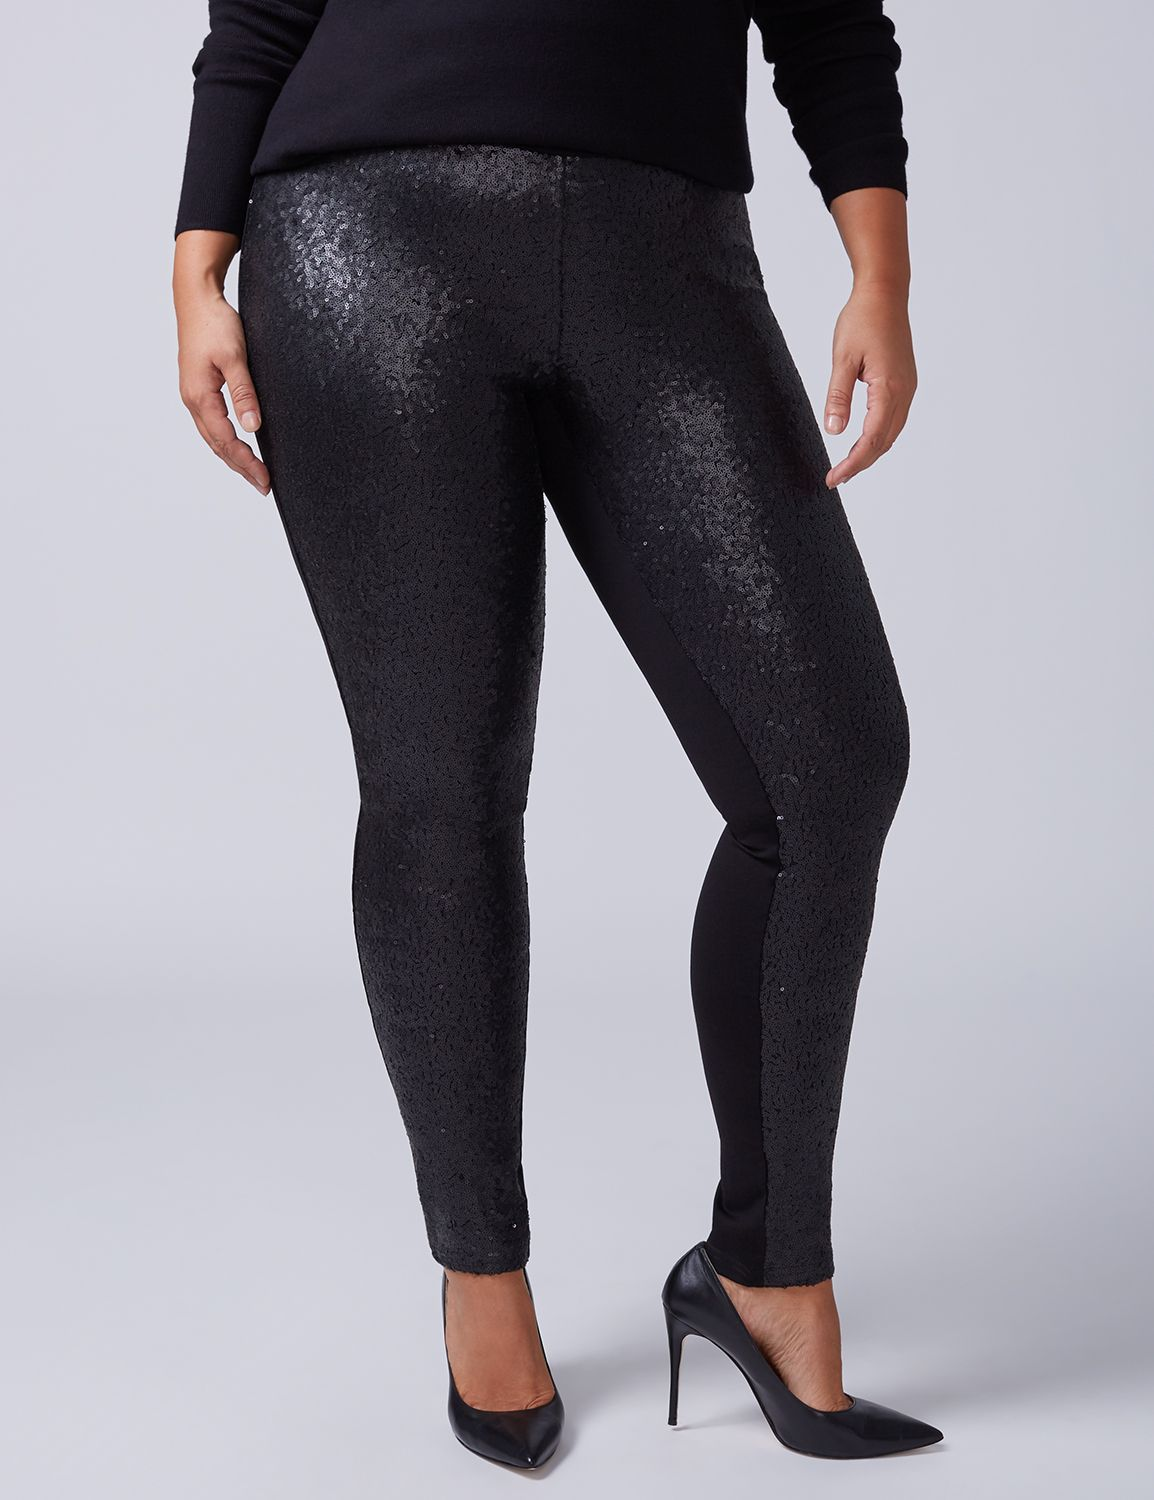 Lane Bryant Womens Sequin Legging 22/24 Black